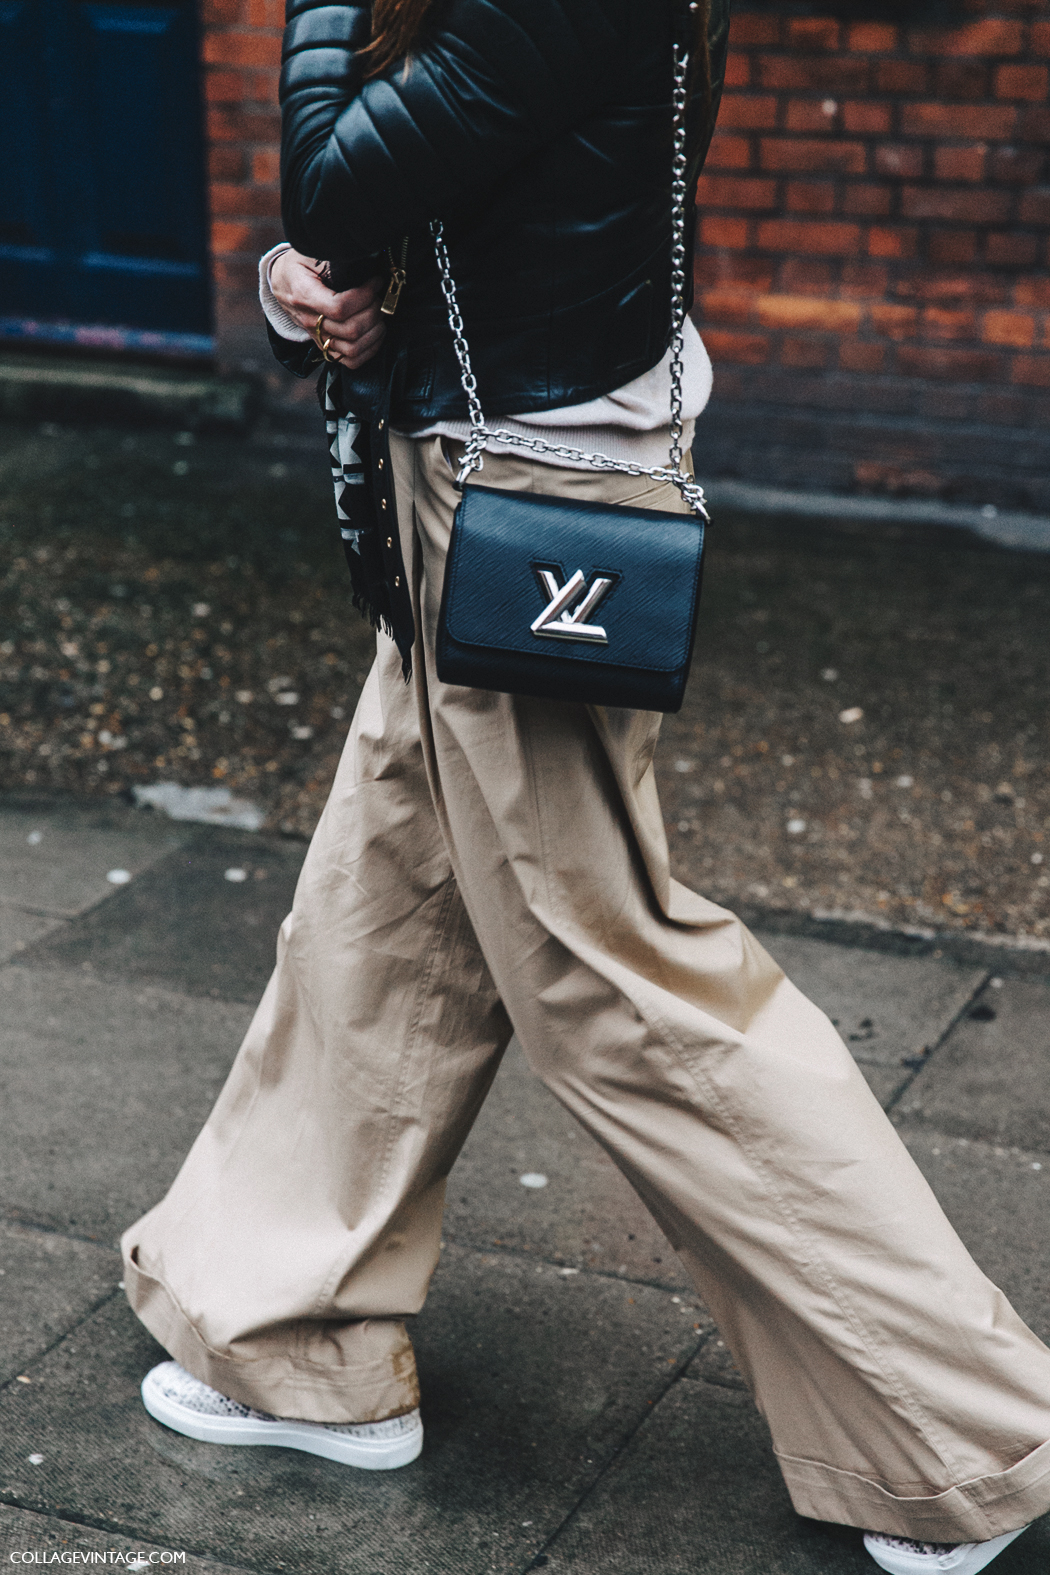 LFW-London_Fashion_Week_Fall_16-Street_Style-Collage_Vintage-Trousers-Louis_Vuitton_Bag-Biker_Jacket-1